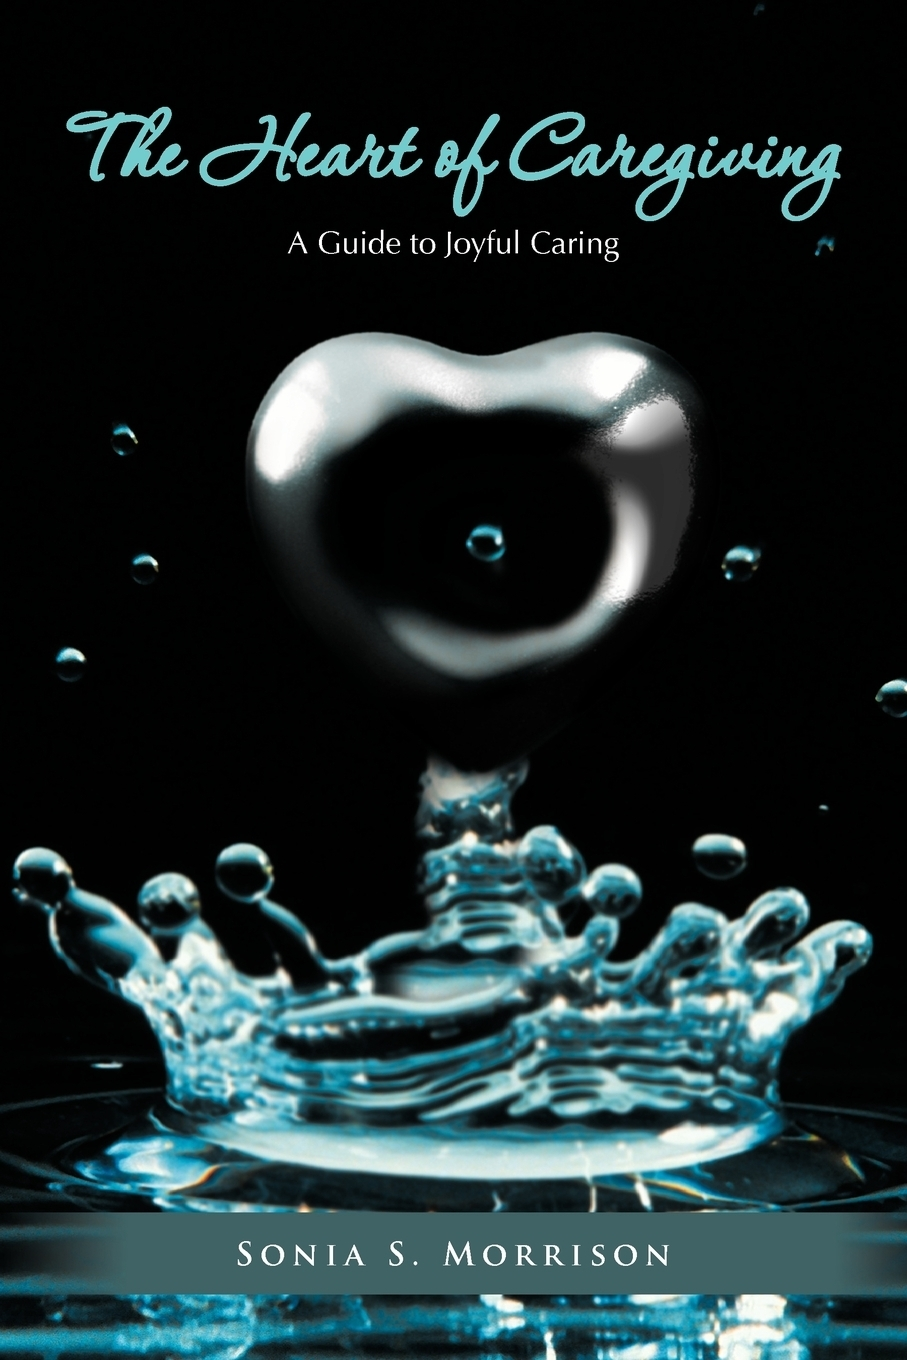 Sonia S. Morrison. The Heart of Caregiving. A Guide to Joyful Caring